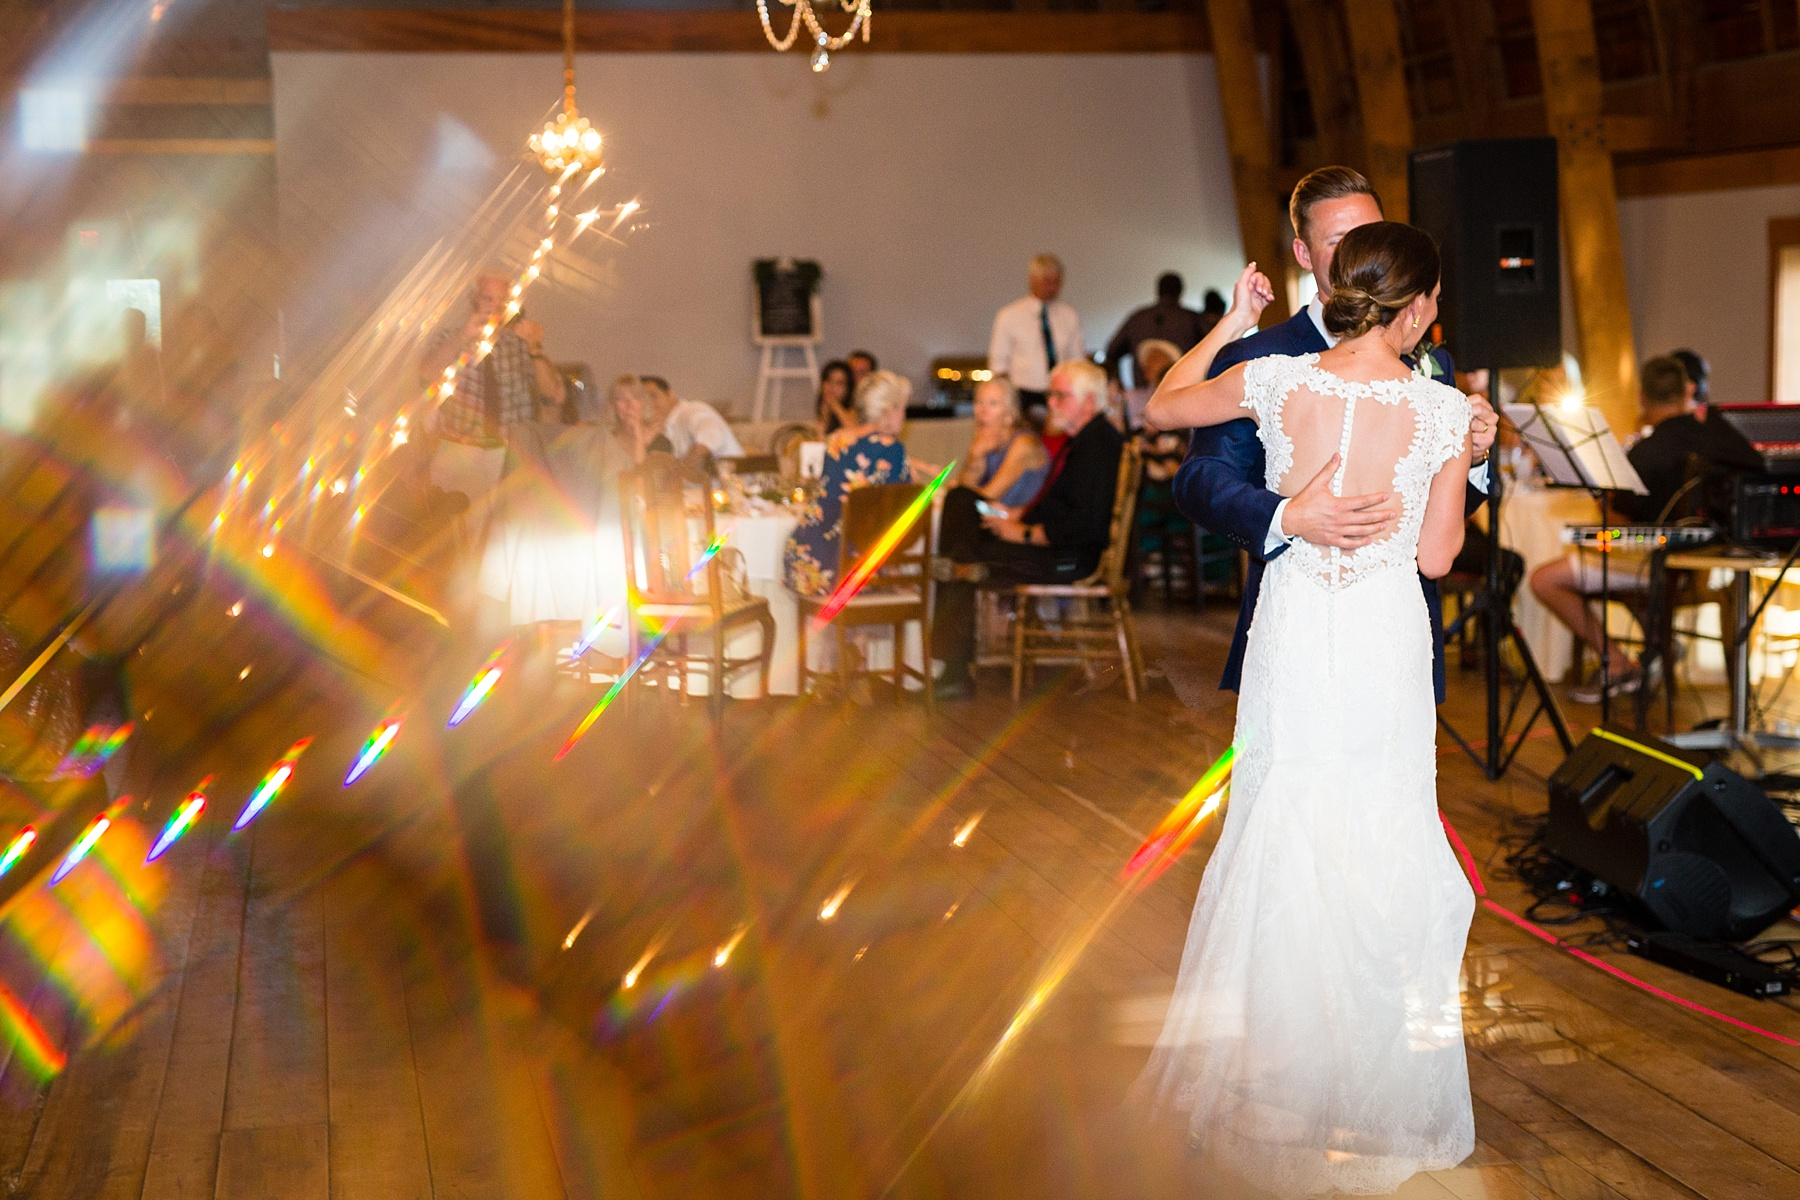 Brandon_Shafer_Photography_Traverse_City_Wedding_0054.jpg